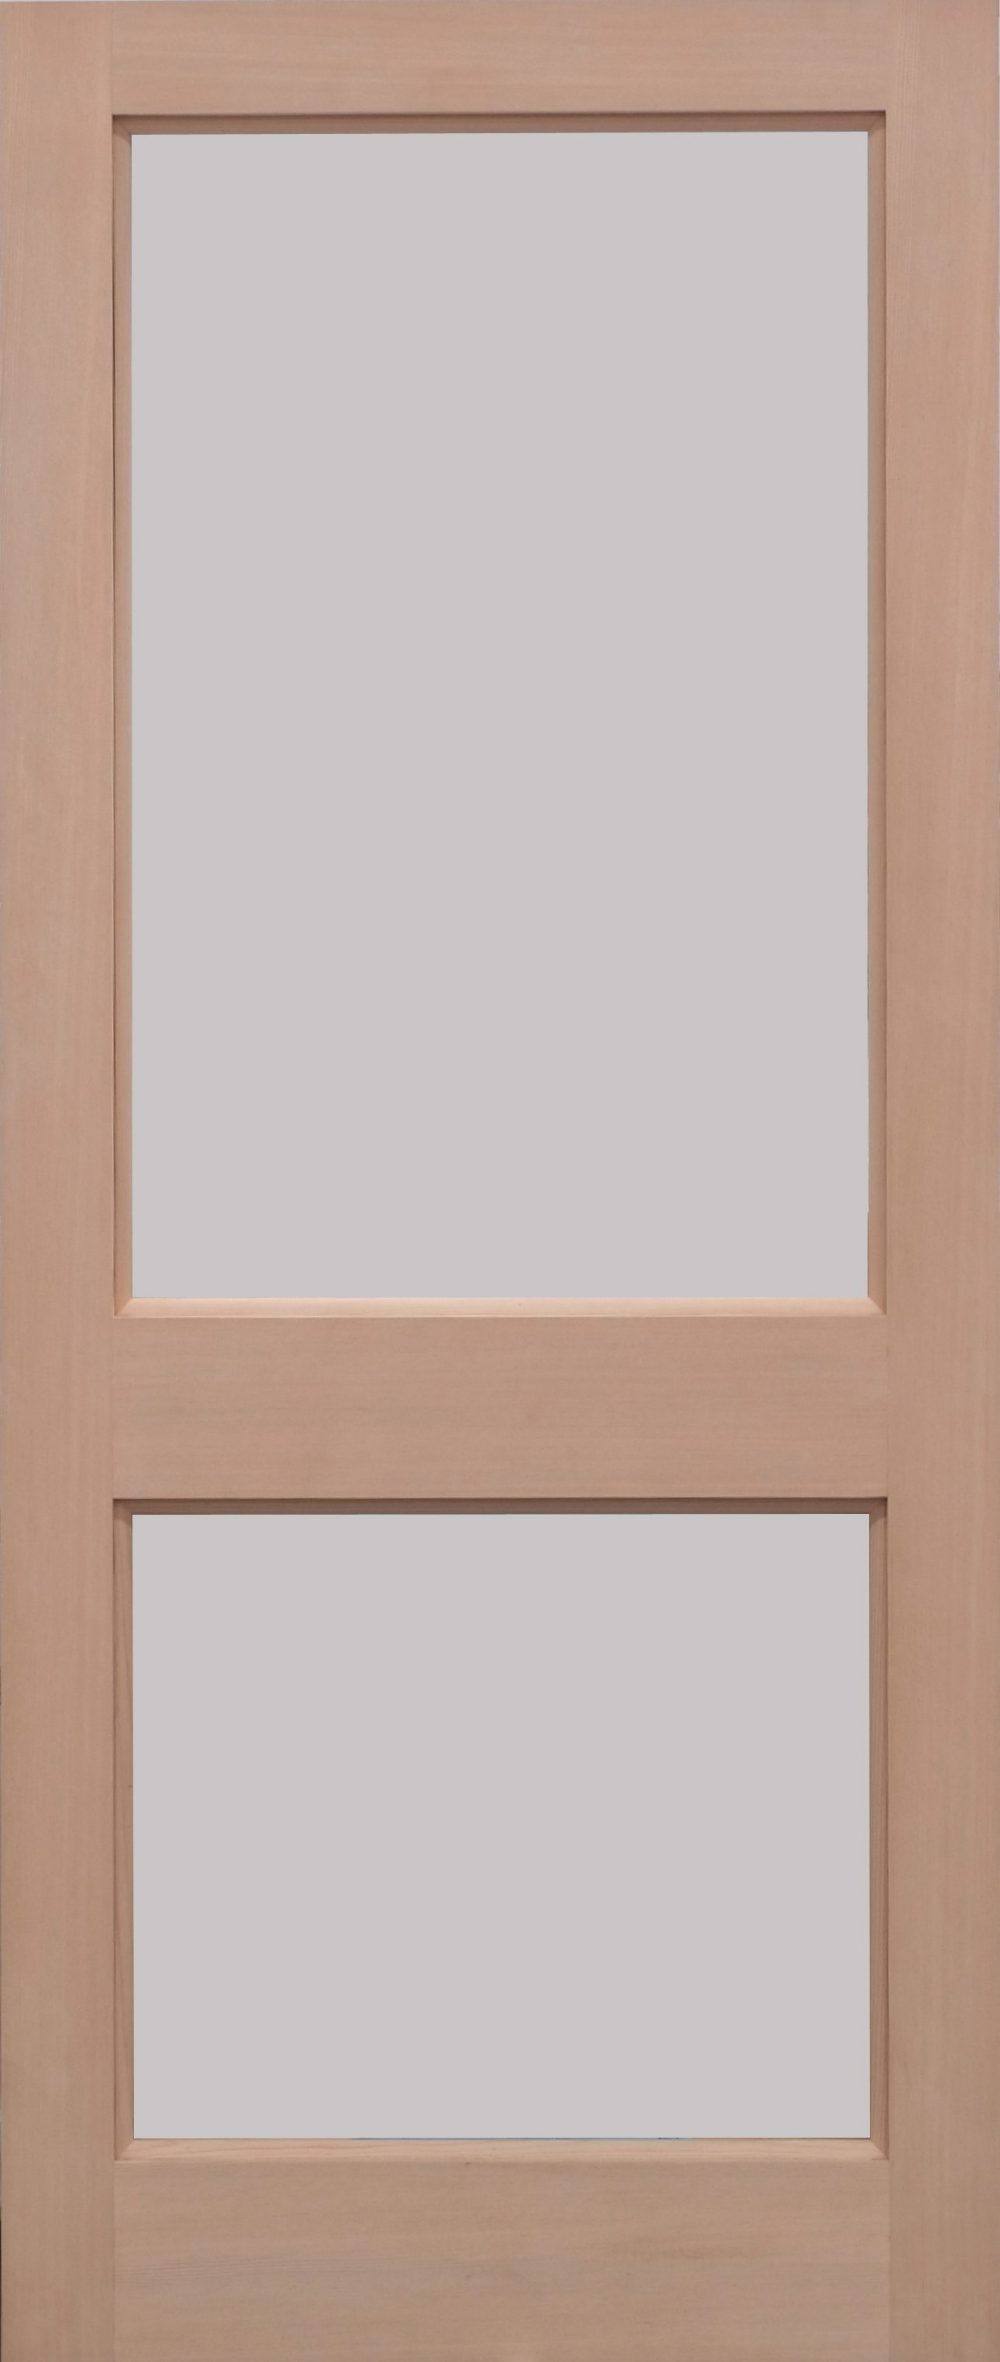 Hemlock 2xgg 44mm Door Trading Doors